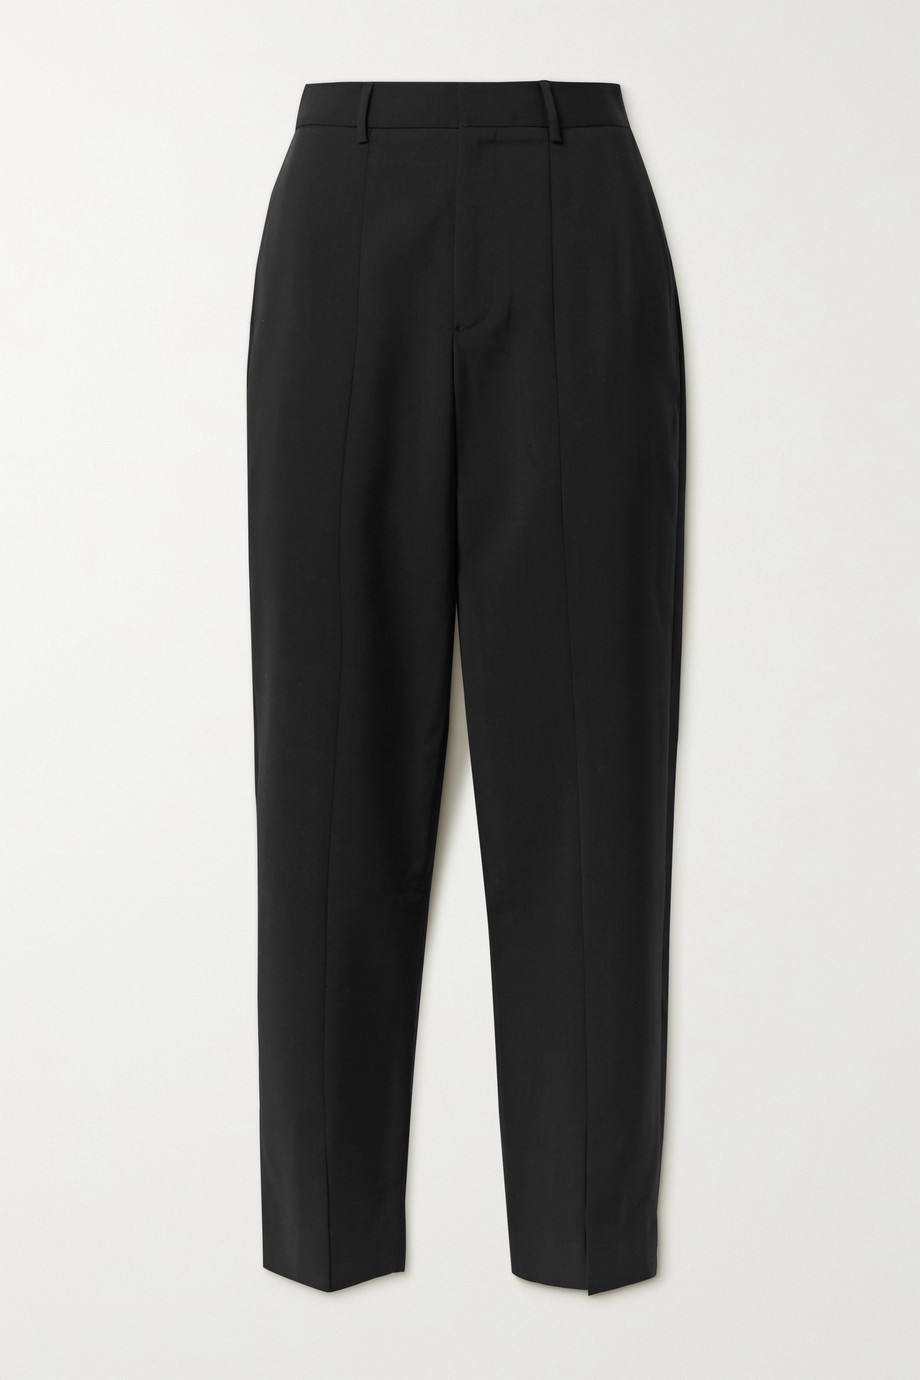 Deveaux Piper woven straight-leg pants